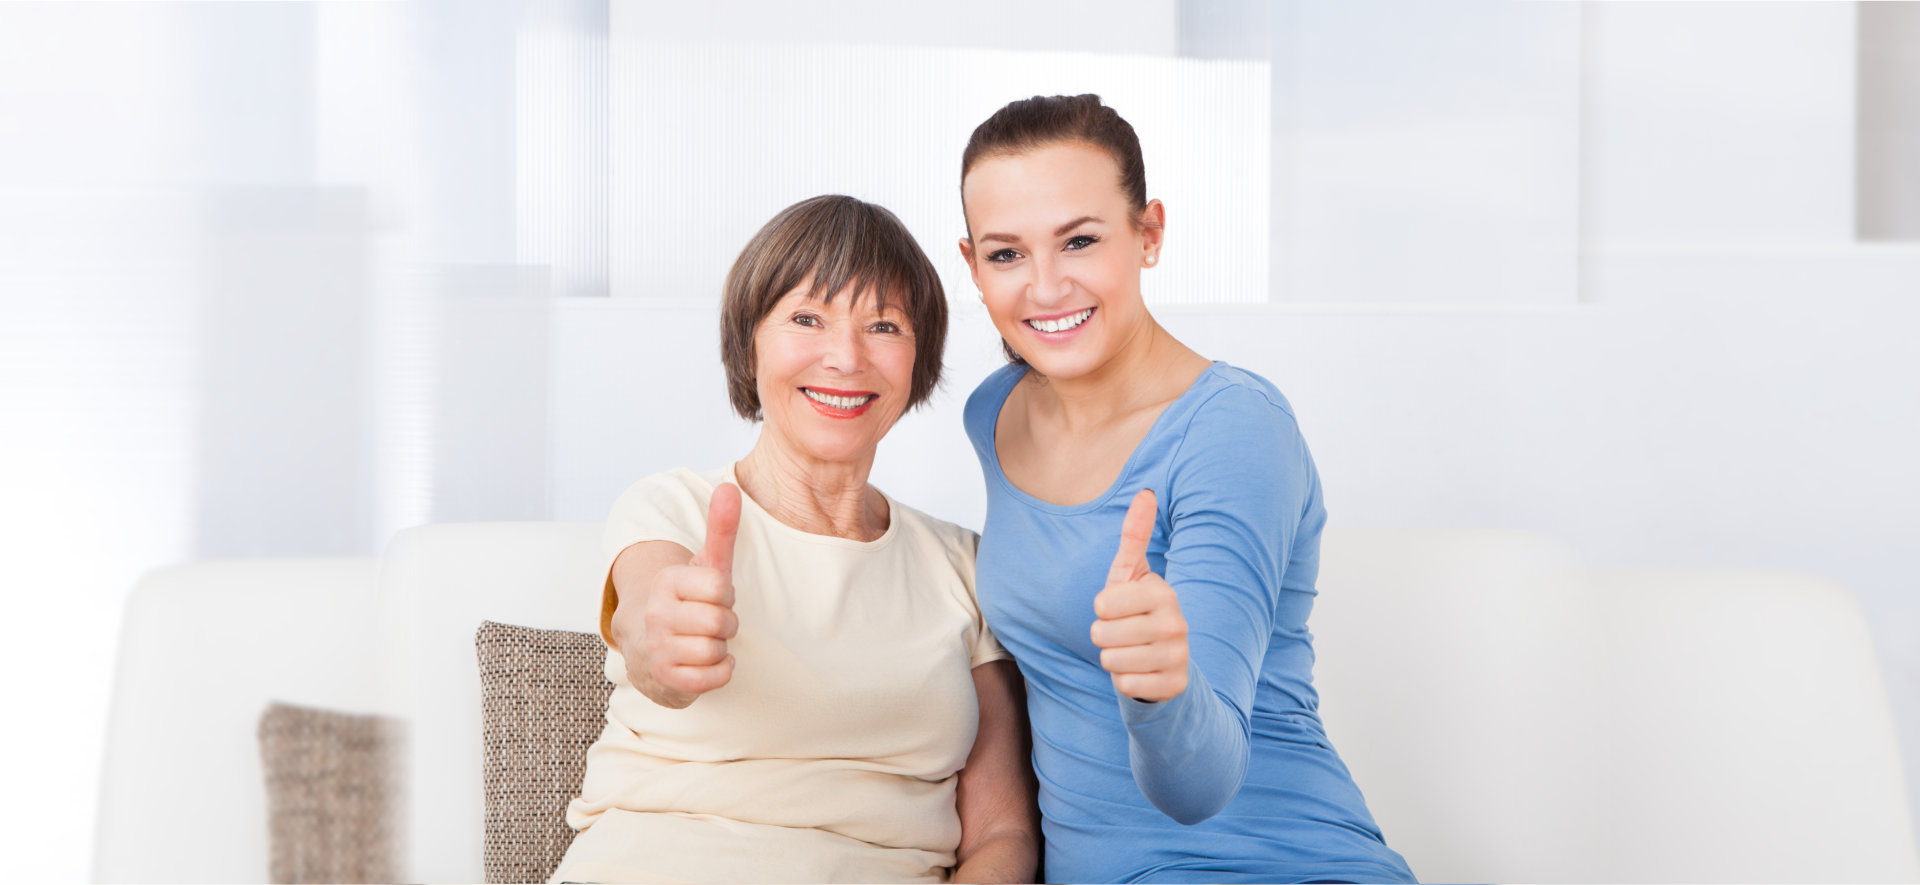 caregiver and patient doing thumbs up